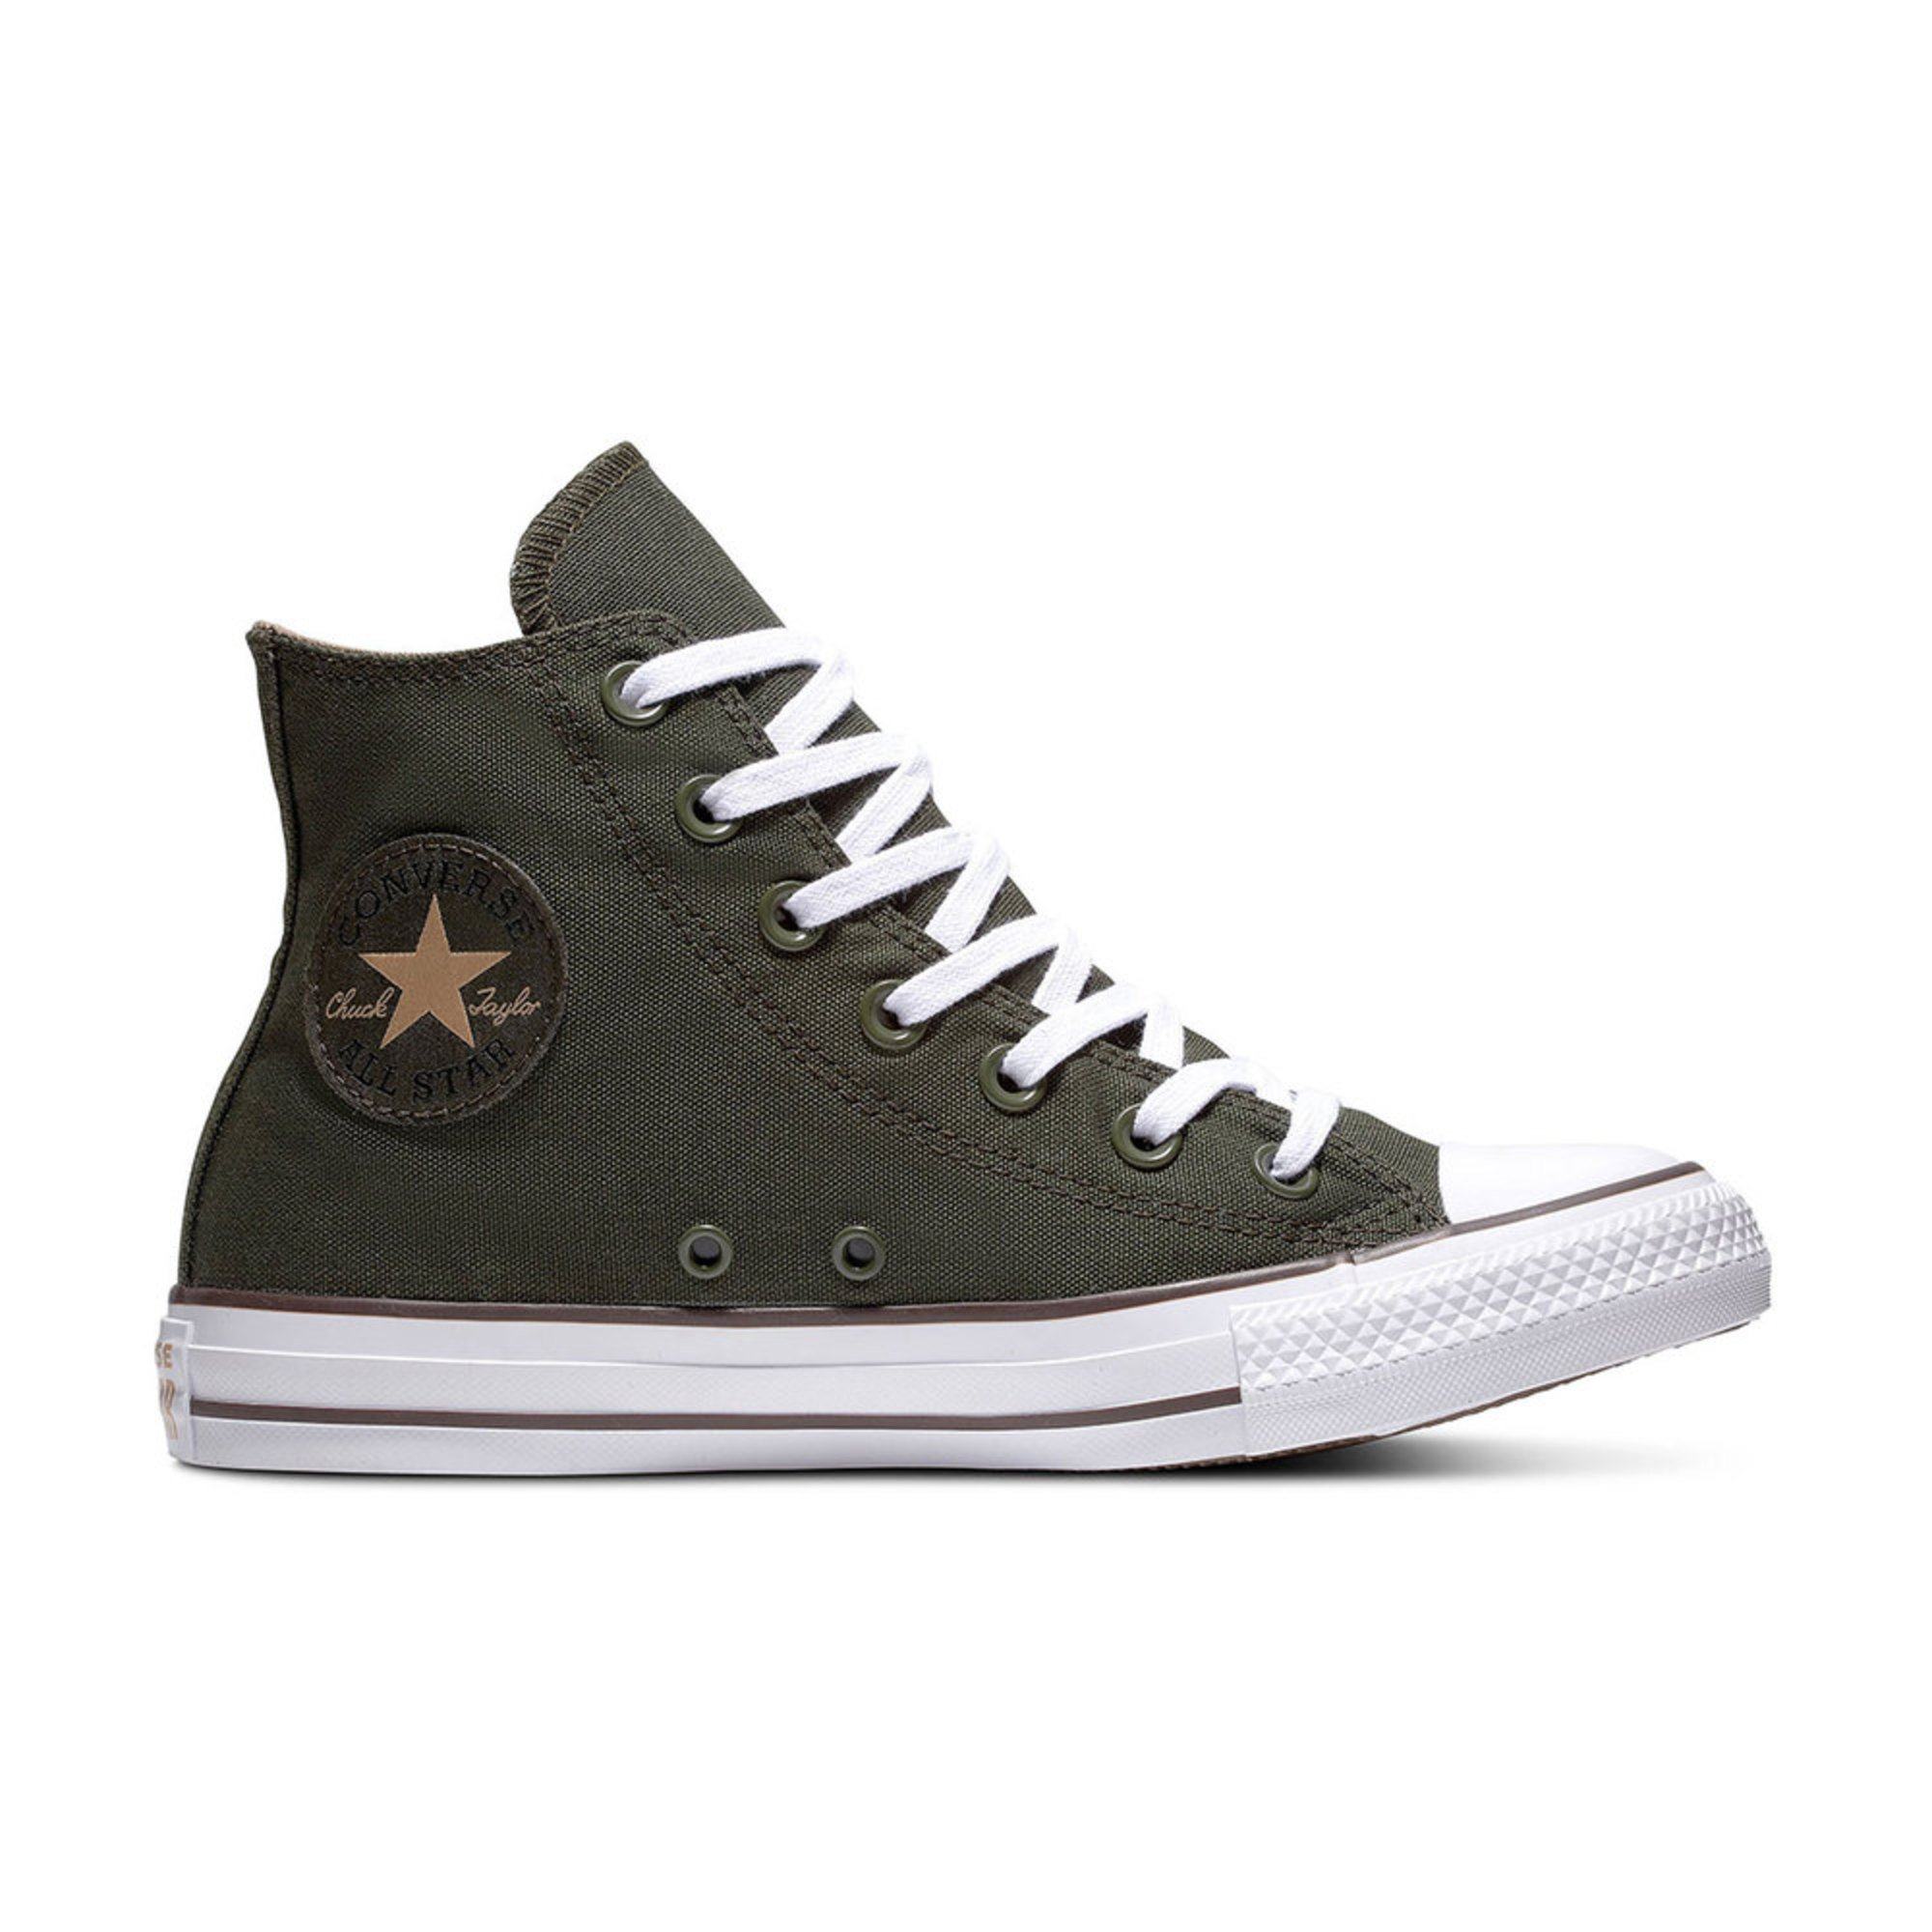 6927e7fb6a28 Converse. Converse Men s Chuck Taylor All Star Hi Top Basketball Shoe